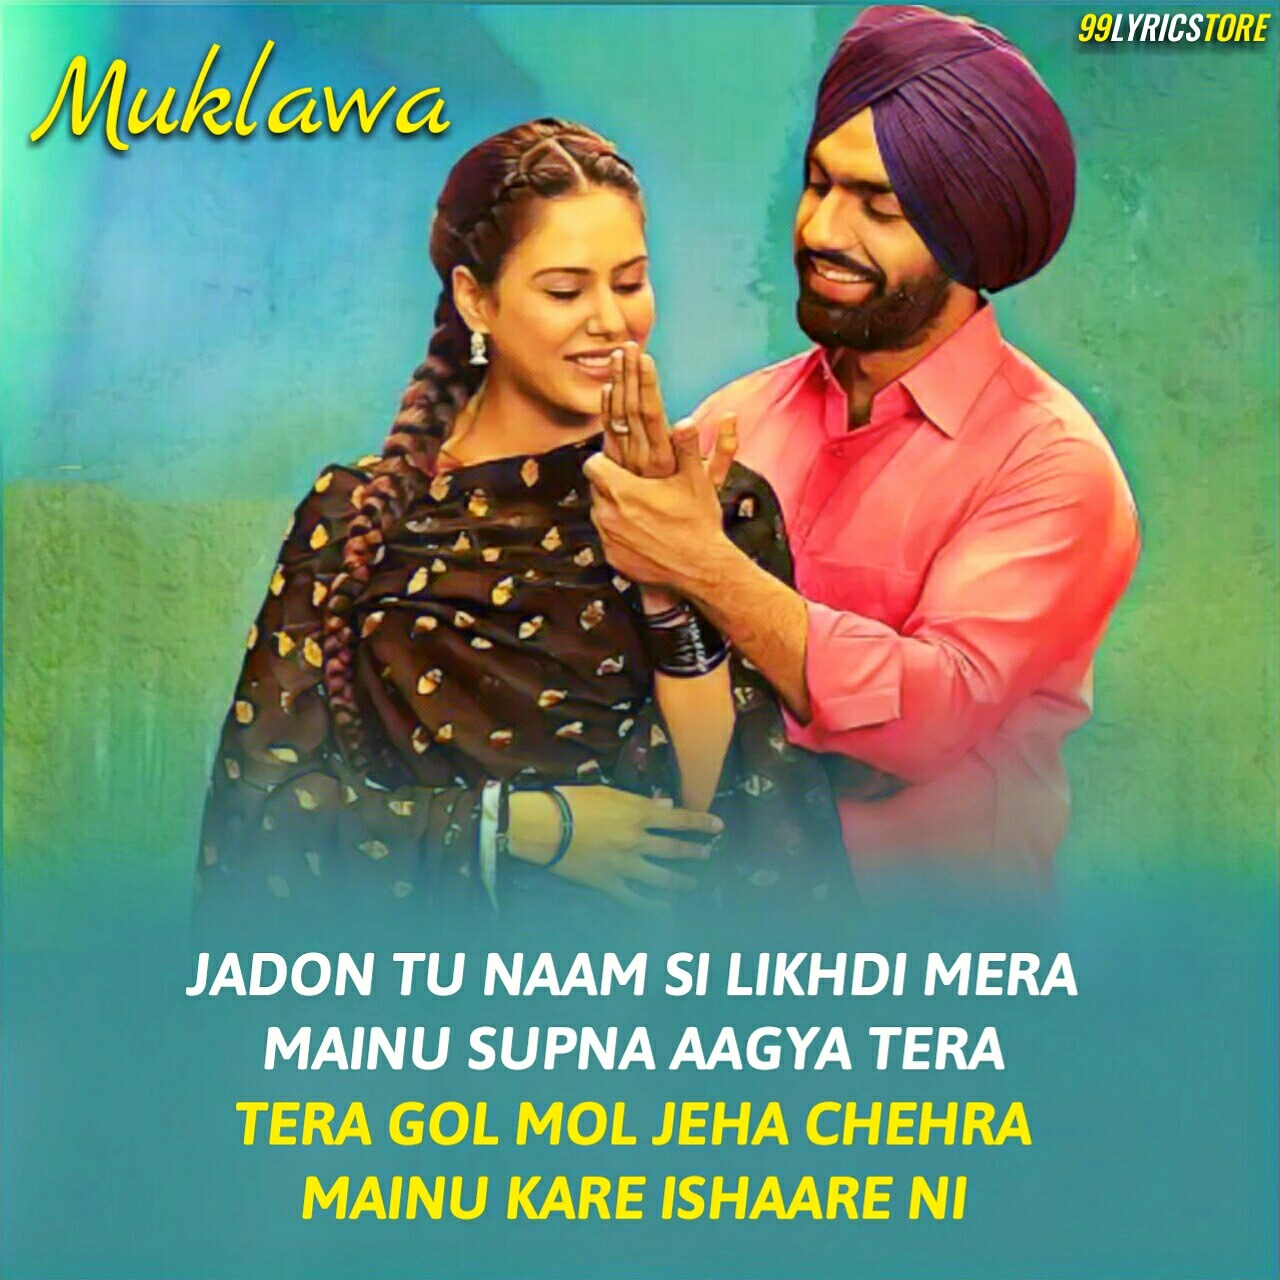 Kala Suit punjabi song lyrics from movie 'Muklawa' sung by ammy virk and mannat noor